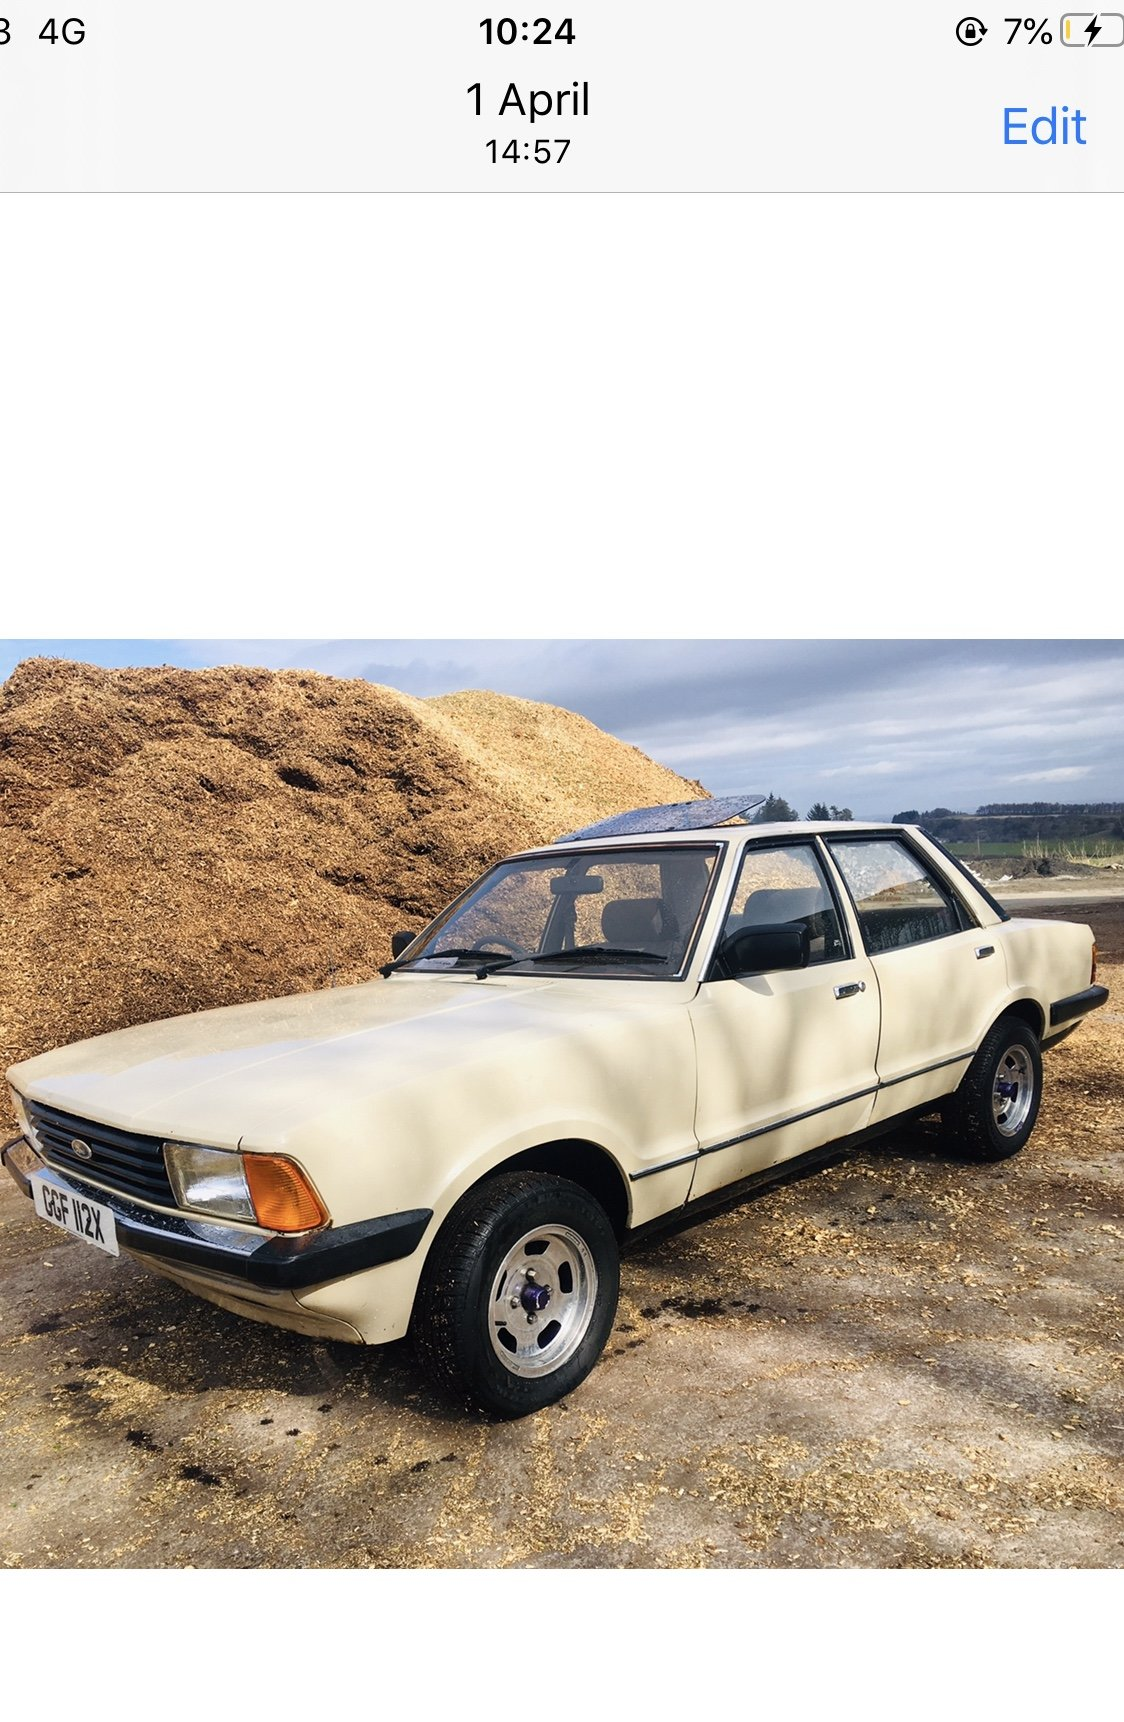 1982 Ford cortina 1.6 mk5 66k For Sale (picture 5 of 6)